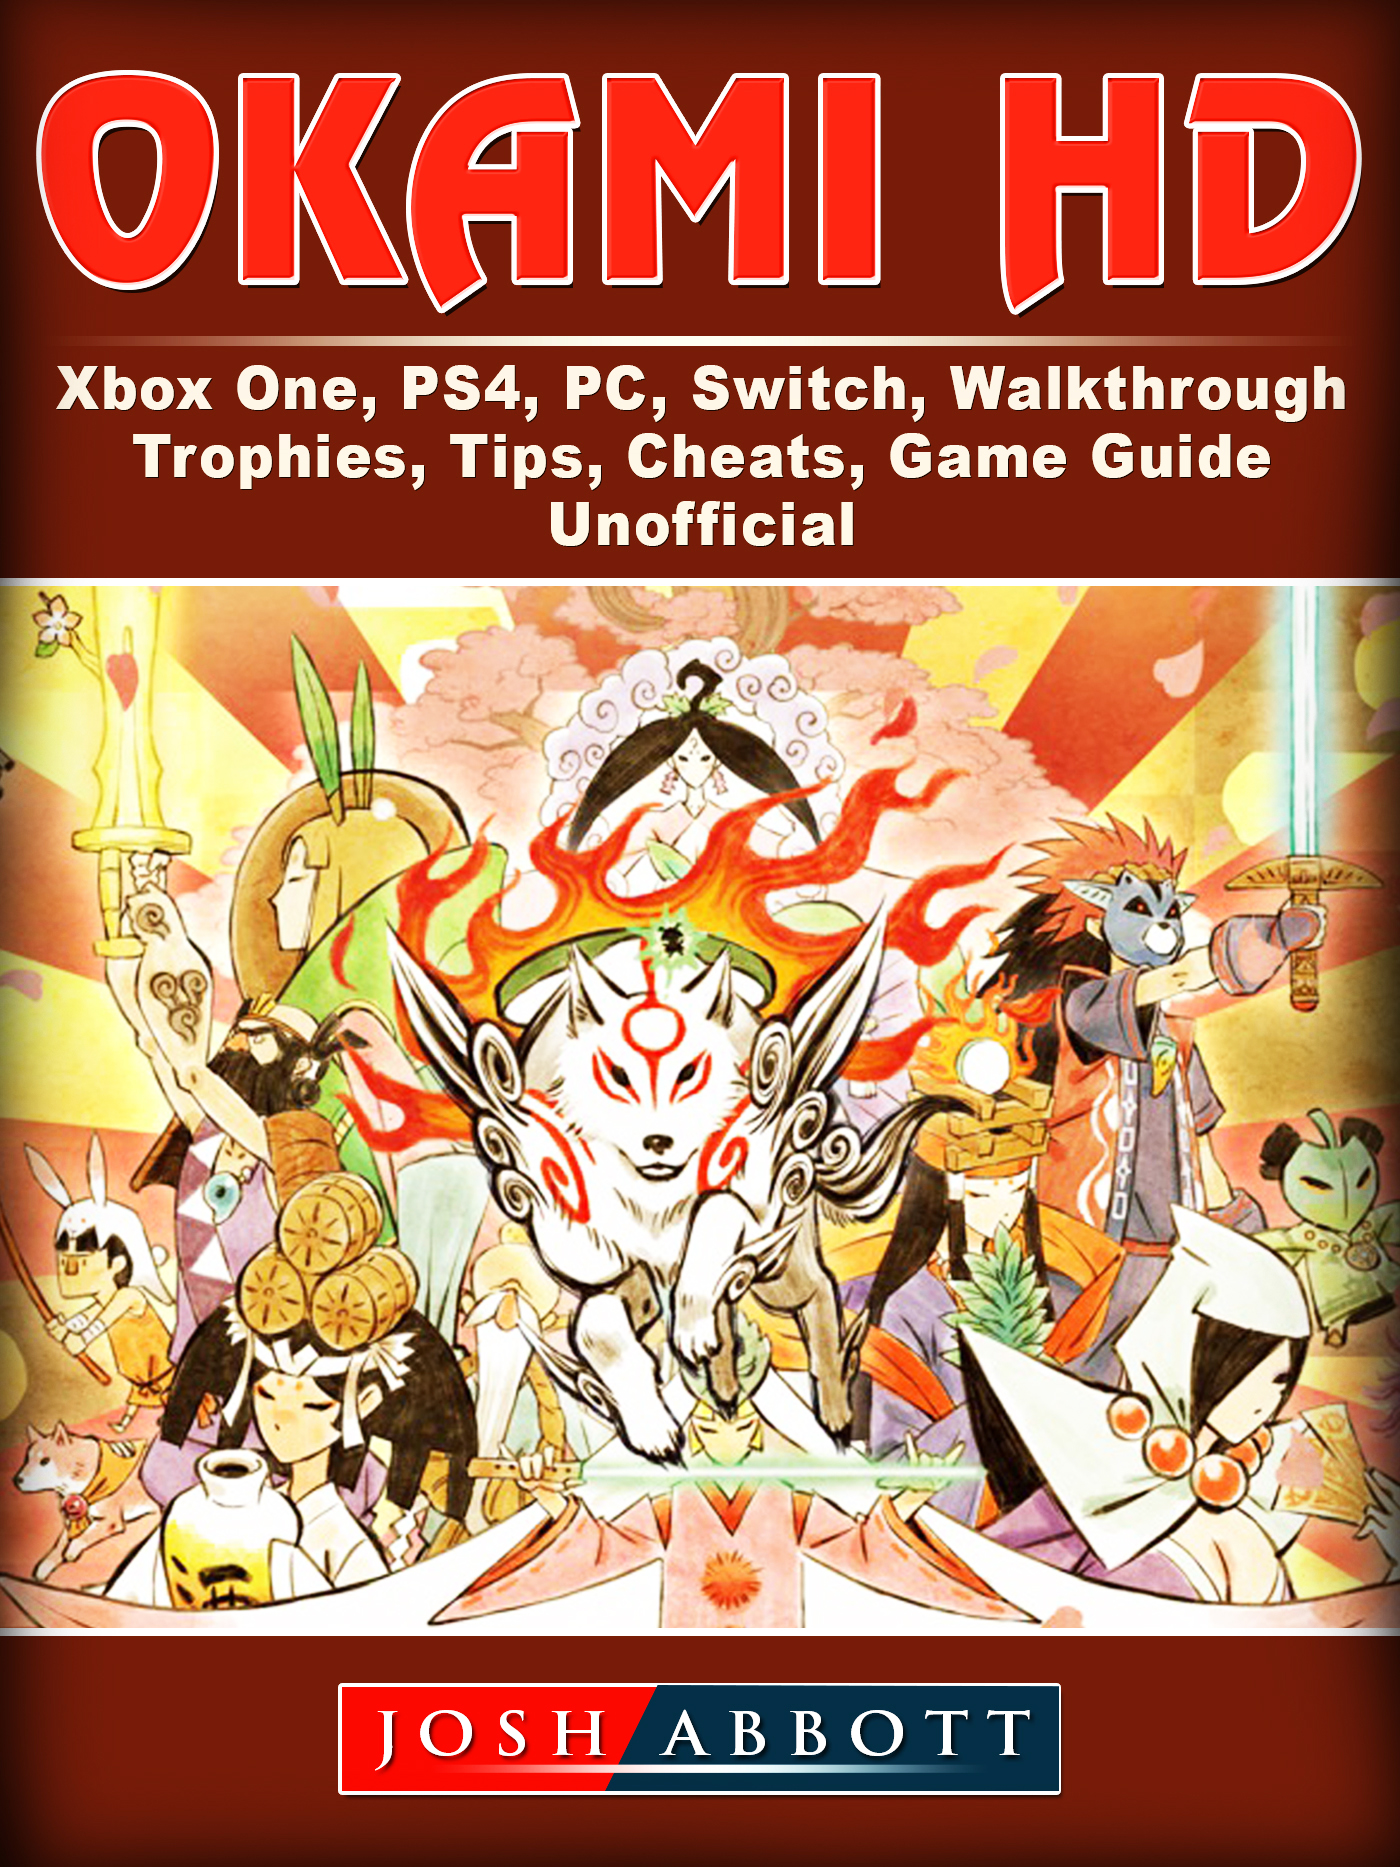 Okami HD, Xbox One, PS4, PC, Switch, Walkthrough, Trophies, Tips, Cheats, Game Guide Unofficial By Josh Abbott